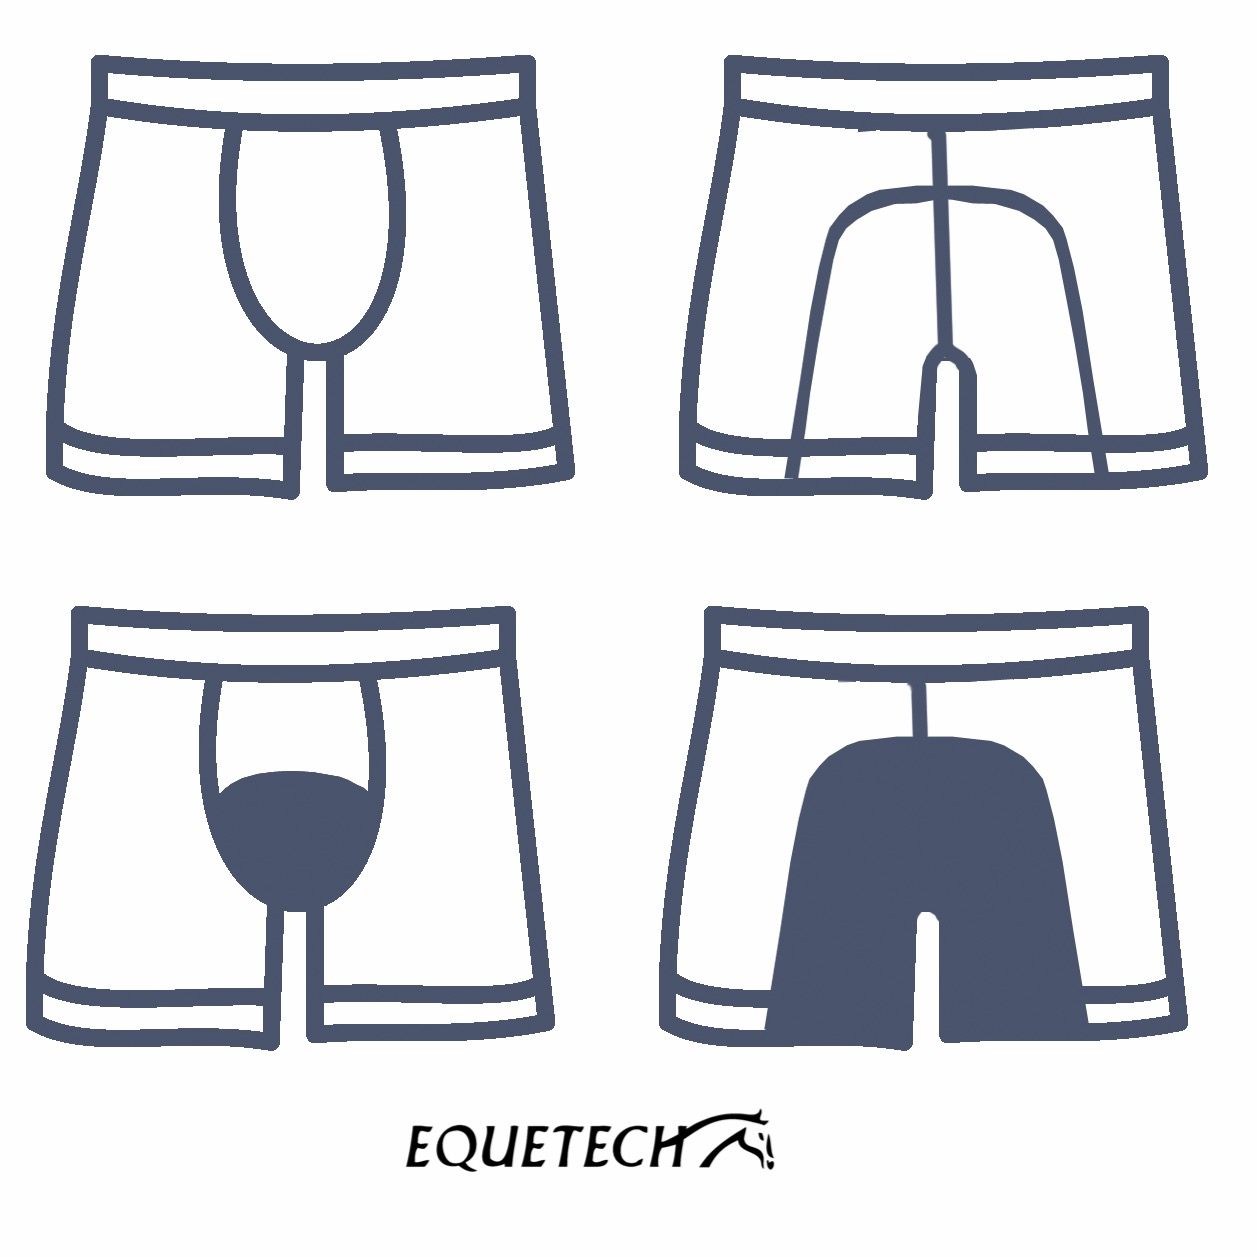 Mens Boxer Shorts padding options